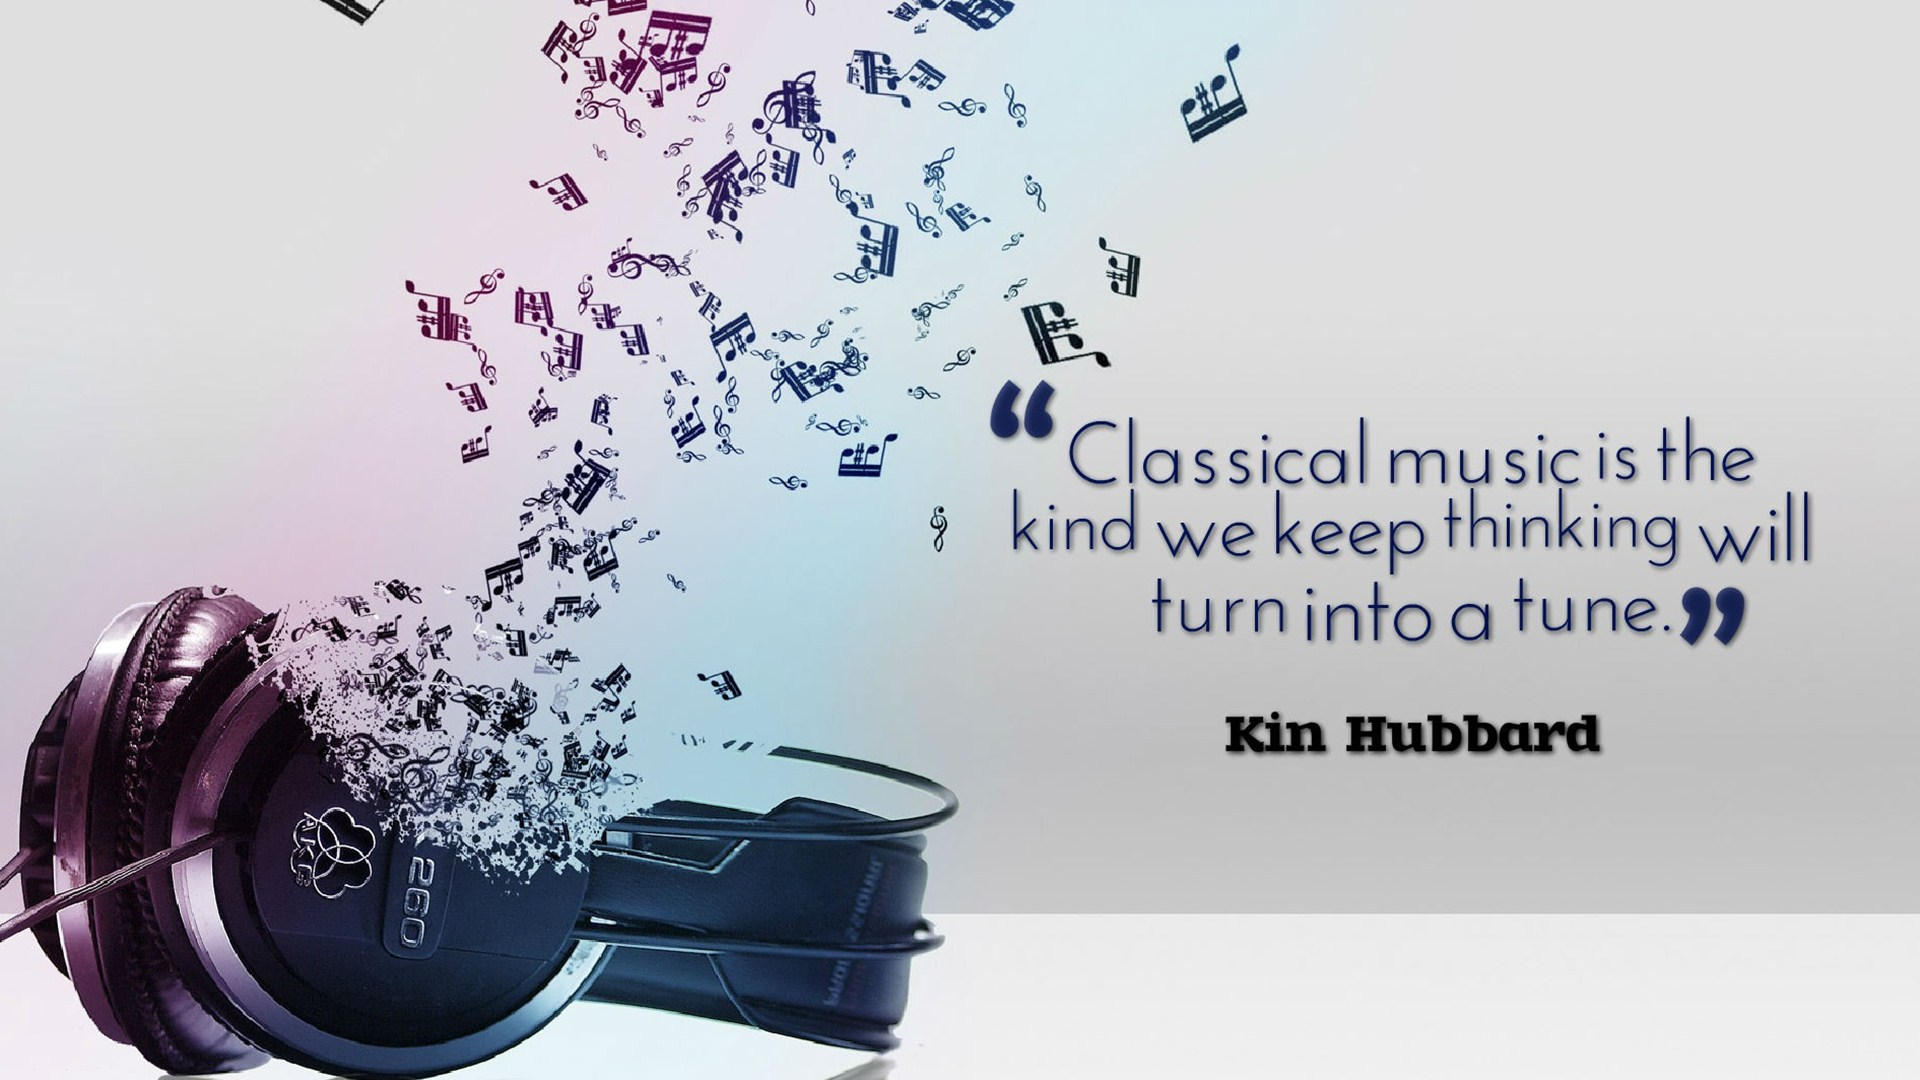 Classical Music Quotes Wallpaper - Music Quote Wallpaper Hd - HD Wallpaper